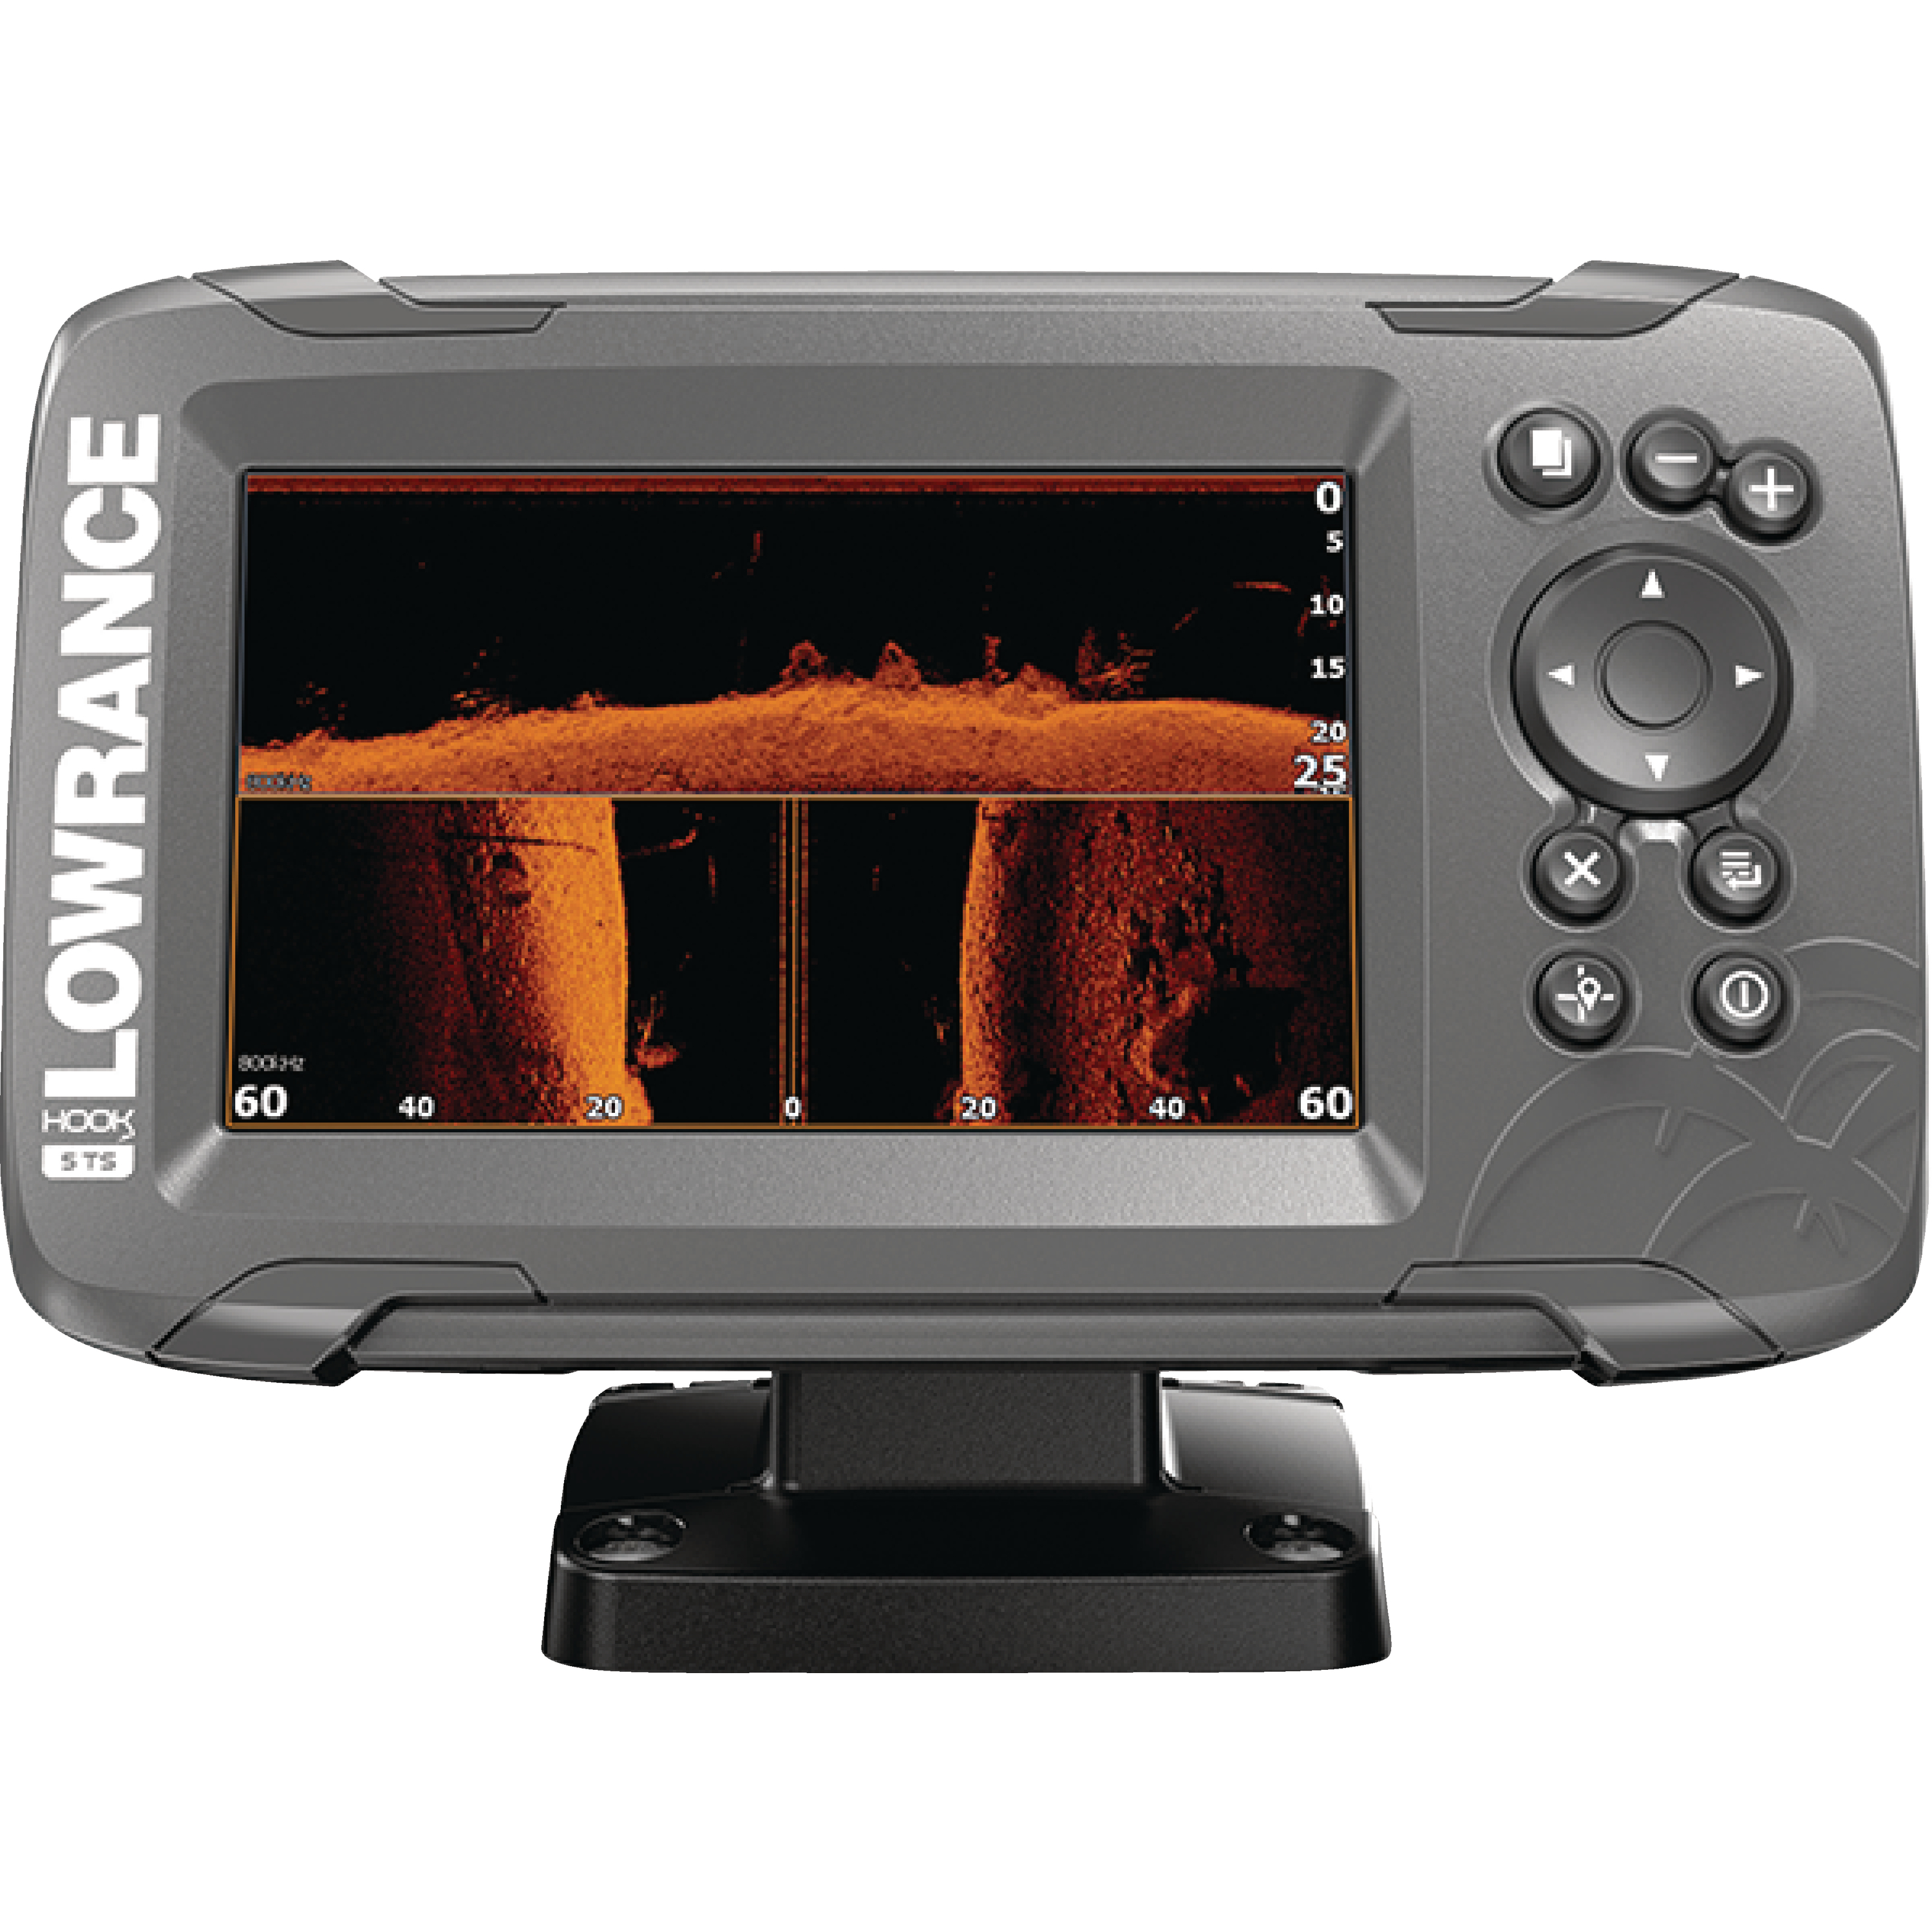 "Lowrance 000-14290-001 HOOK-2 7 Fishfinder with SplitShot Transducer, US/Canada Nav+ Maps, CHIRP, DownScan Imaging & 7"" Display"